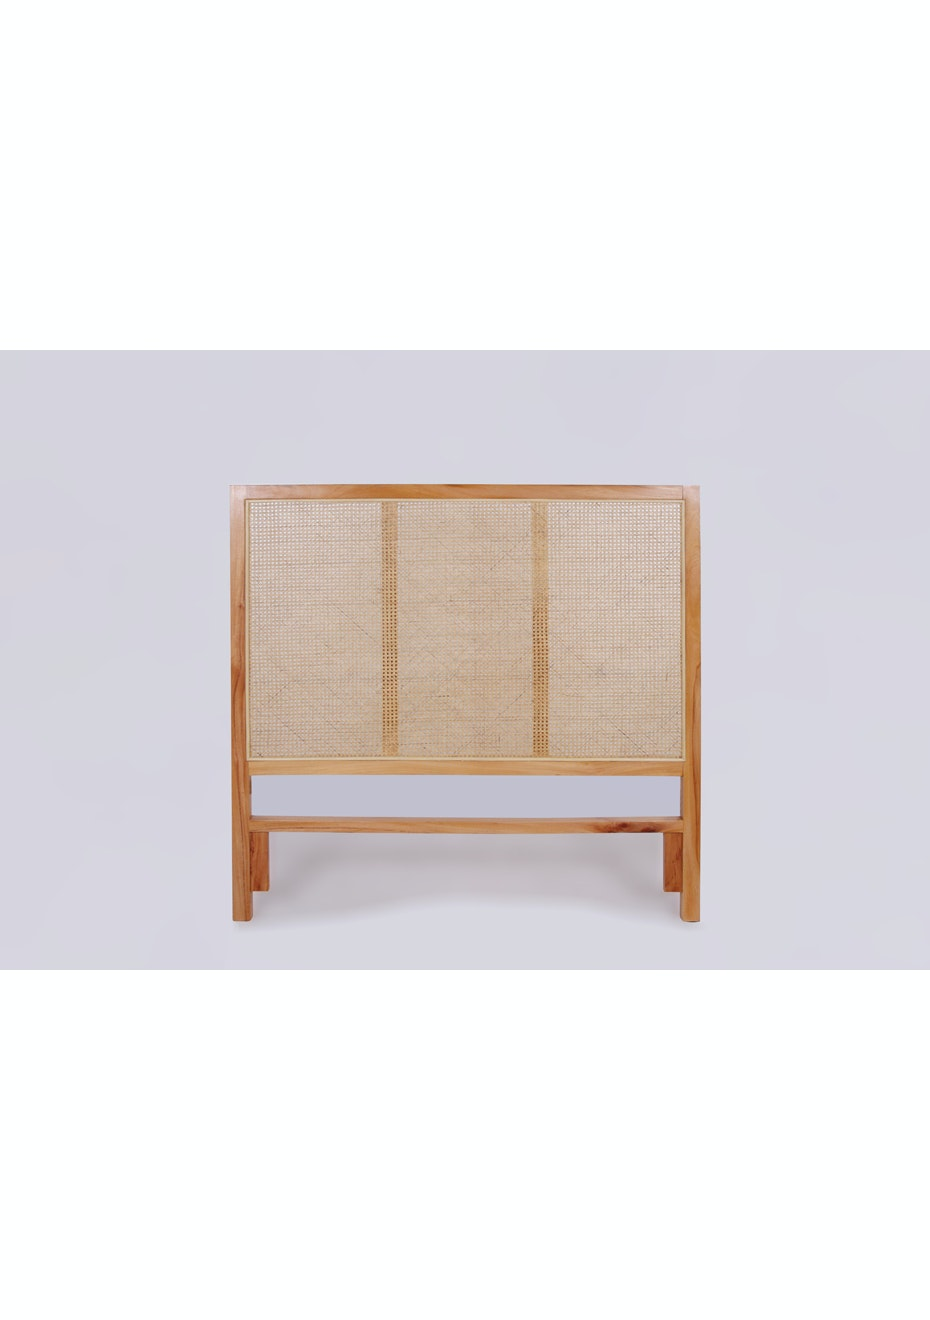 Resort Super King Rattan Headboard Free Shipping Headboards 4 Days Only Onceit